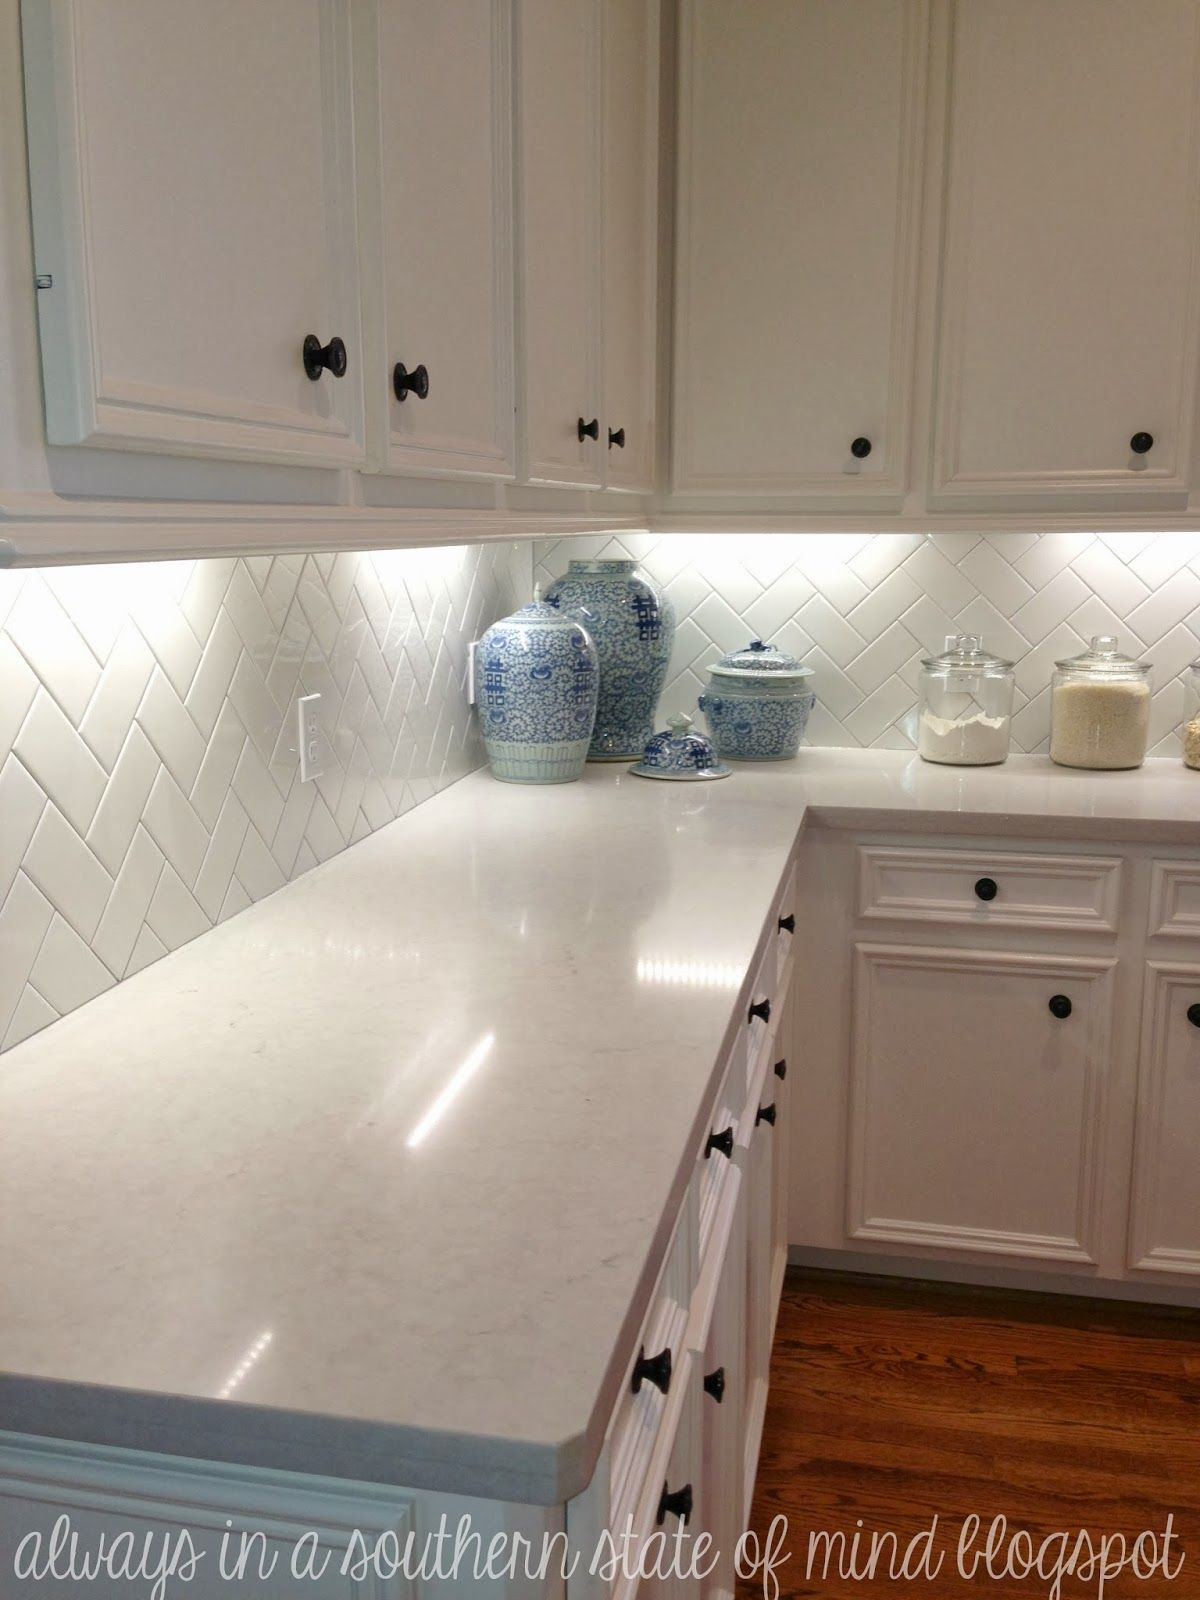 Charmant Always In A Southern State Of Mind: Ramblings On The Reno...countertops  Revisited